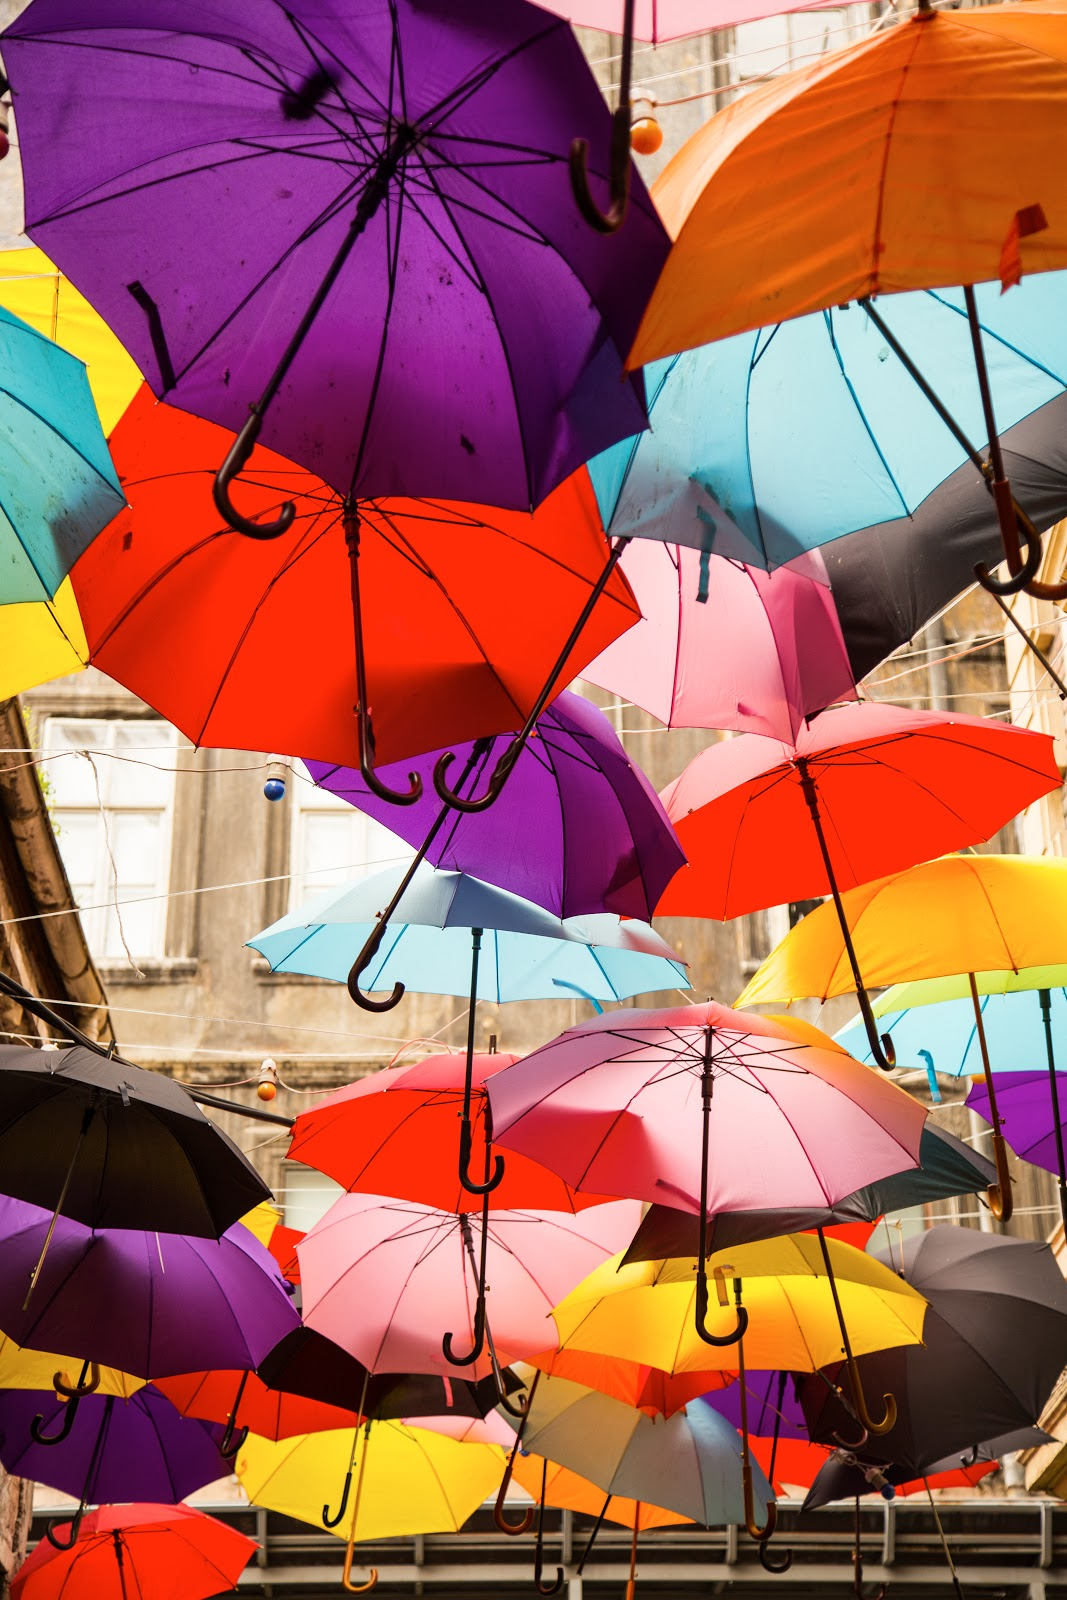 An array of brightly colored umbrellas in purple, orange, light blue, teal yellow, and red, hanging from ropes with sun shining through.